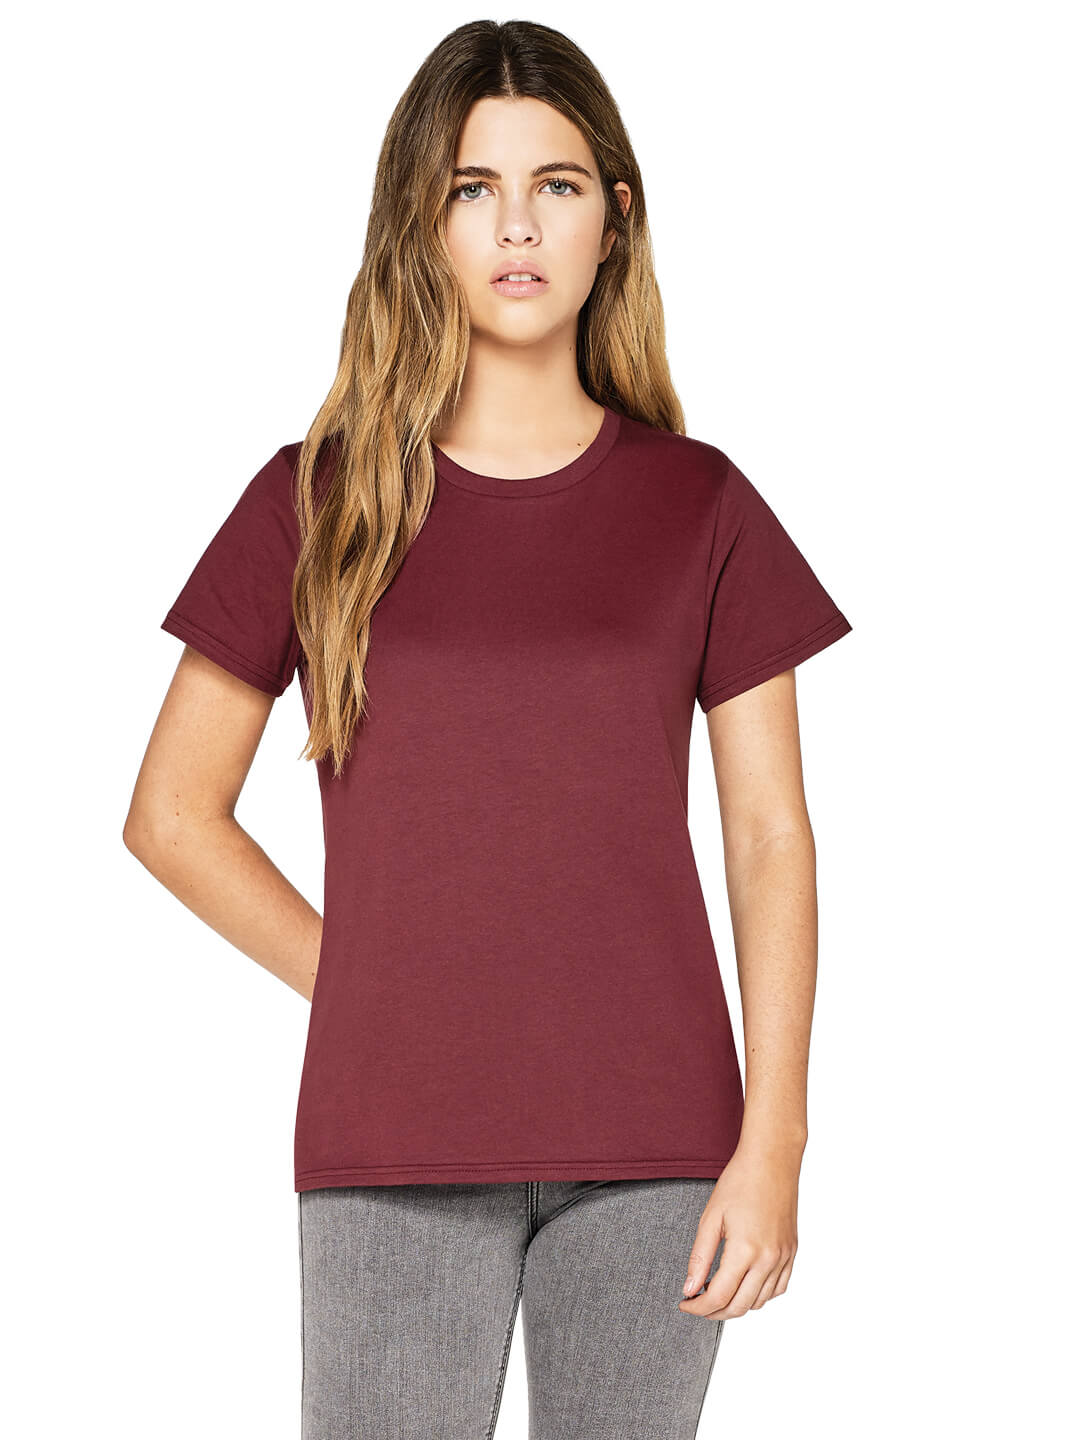 Organic Essential T-shirt: Womens